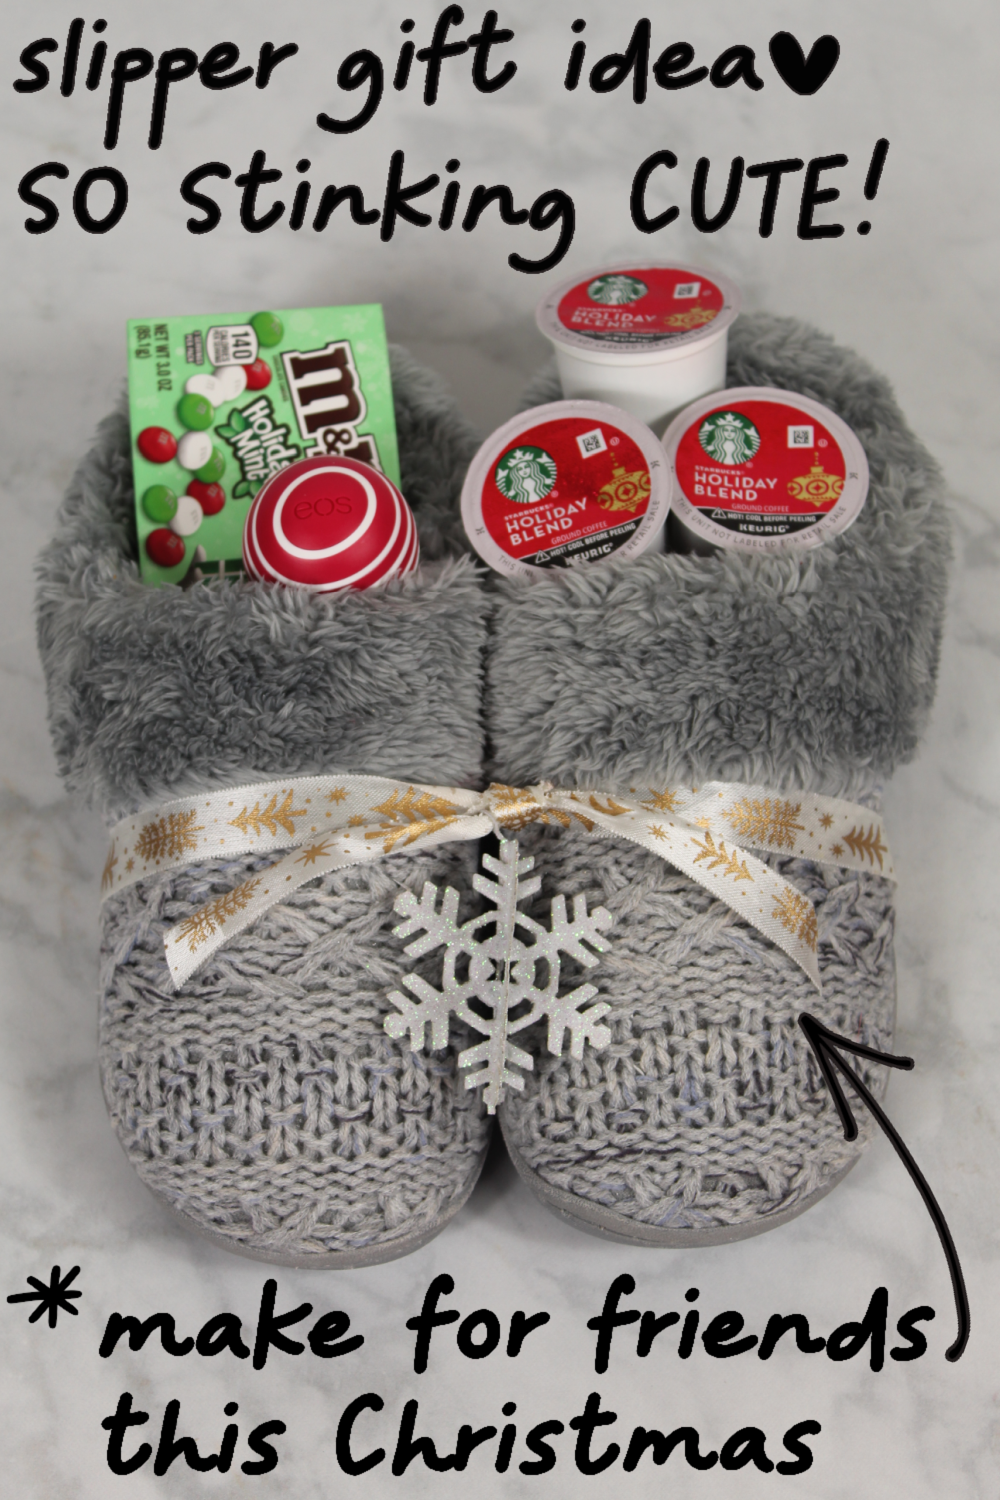 4 Cute Diy Christmas Slippers Gift Basket Ideas In 2020 Cute Christmas Gifts Bff Christmas Gifts Creative Christmas Gifts